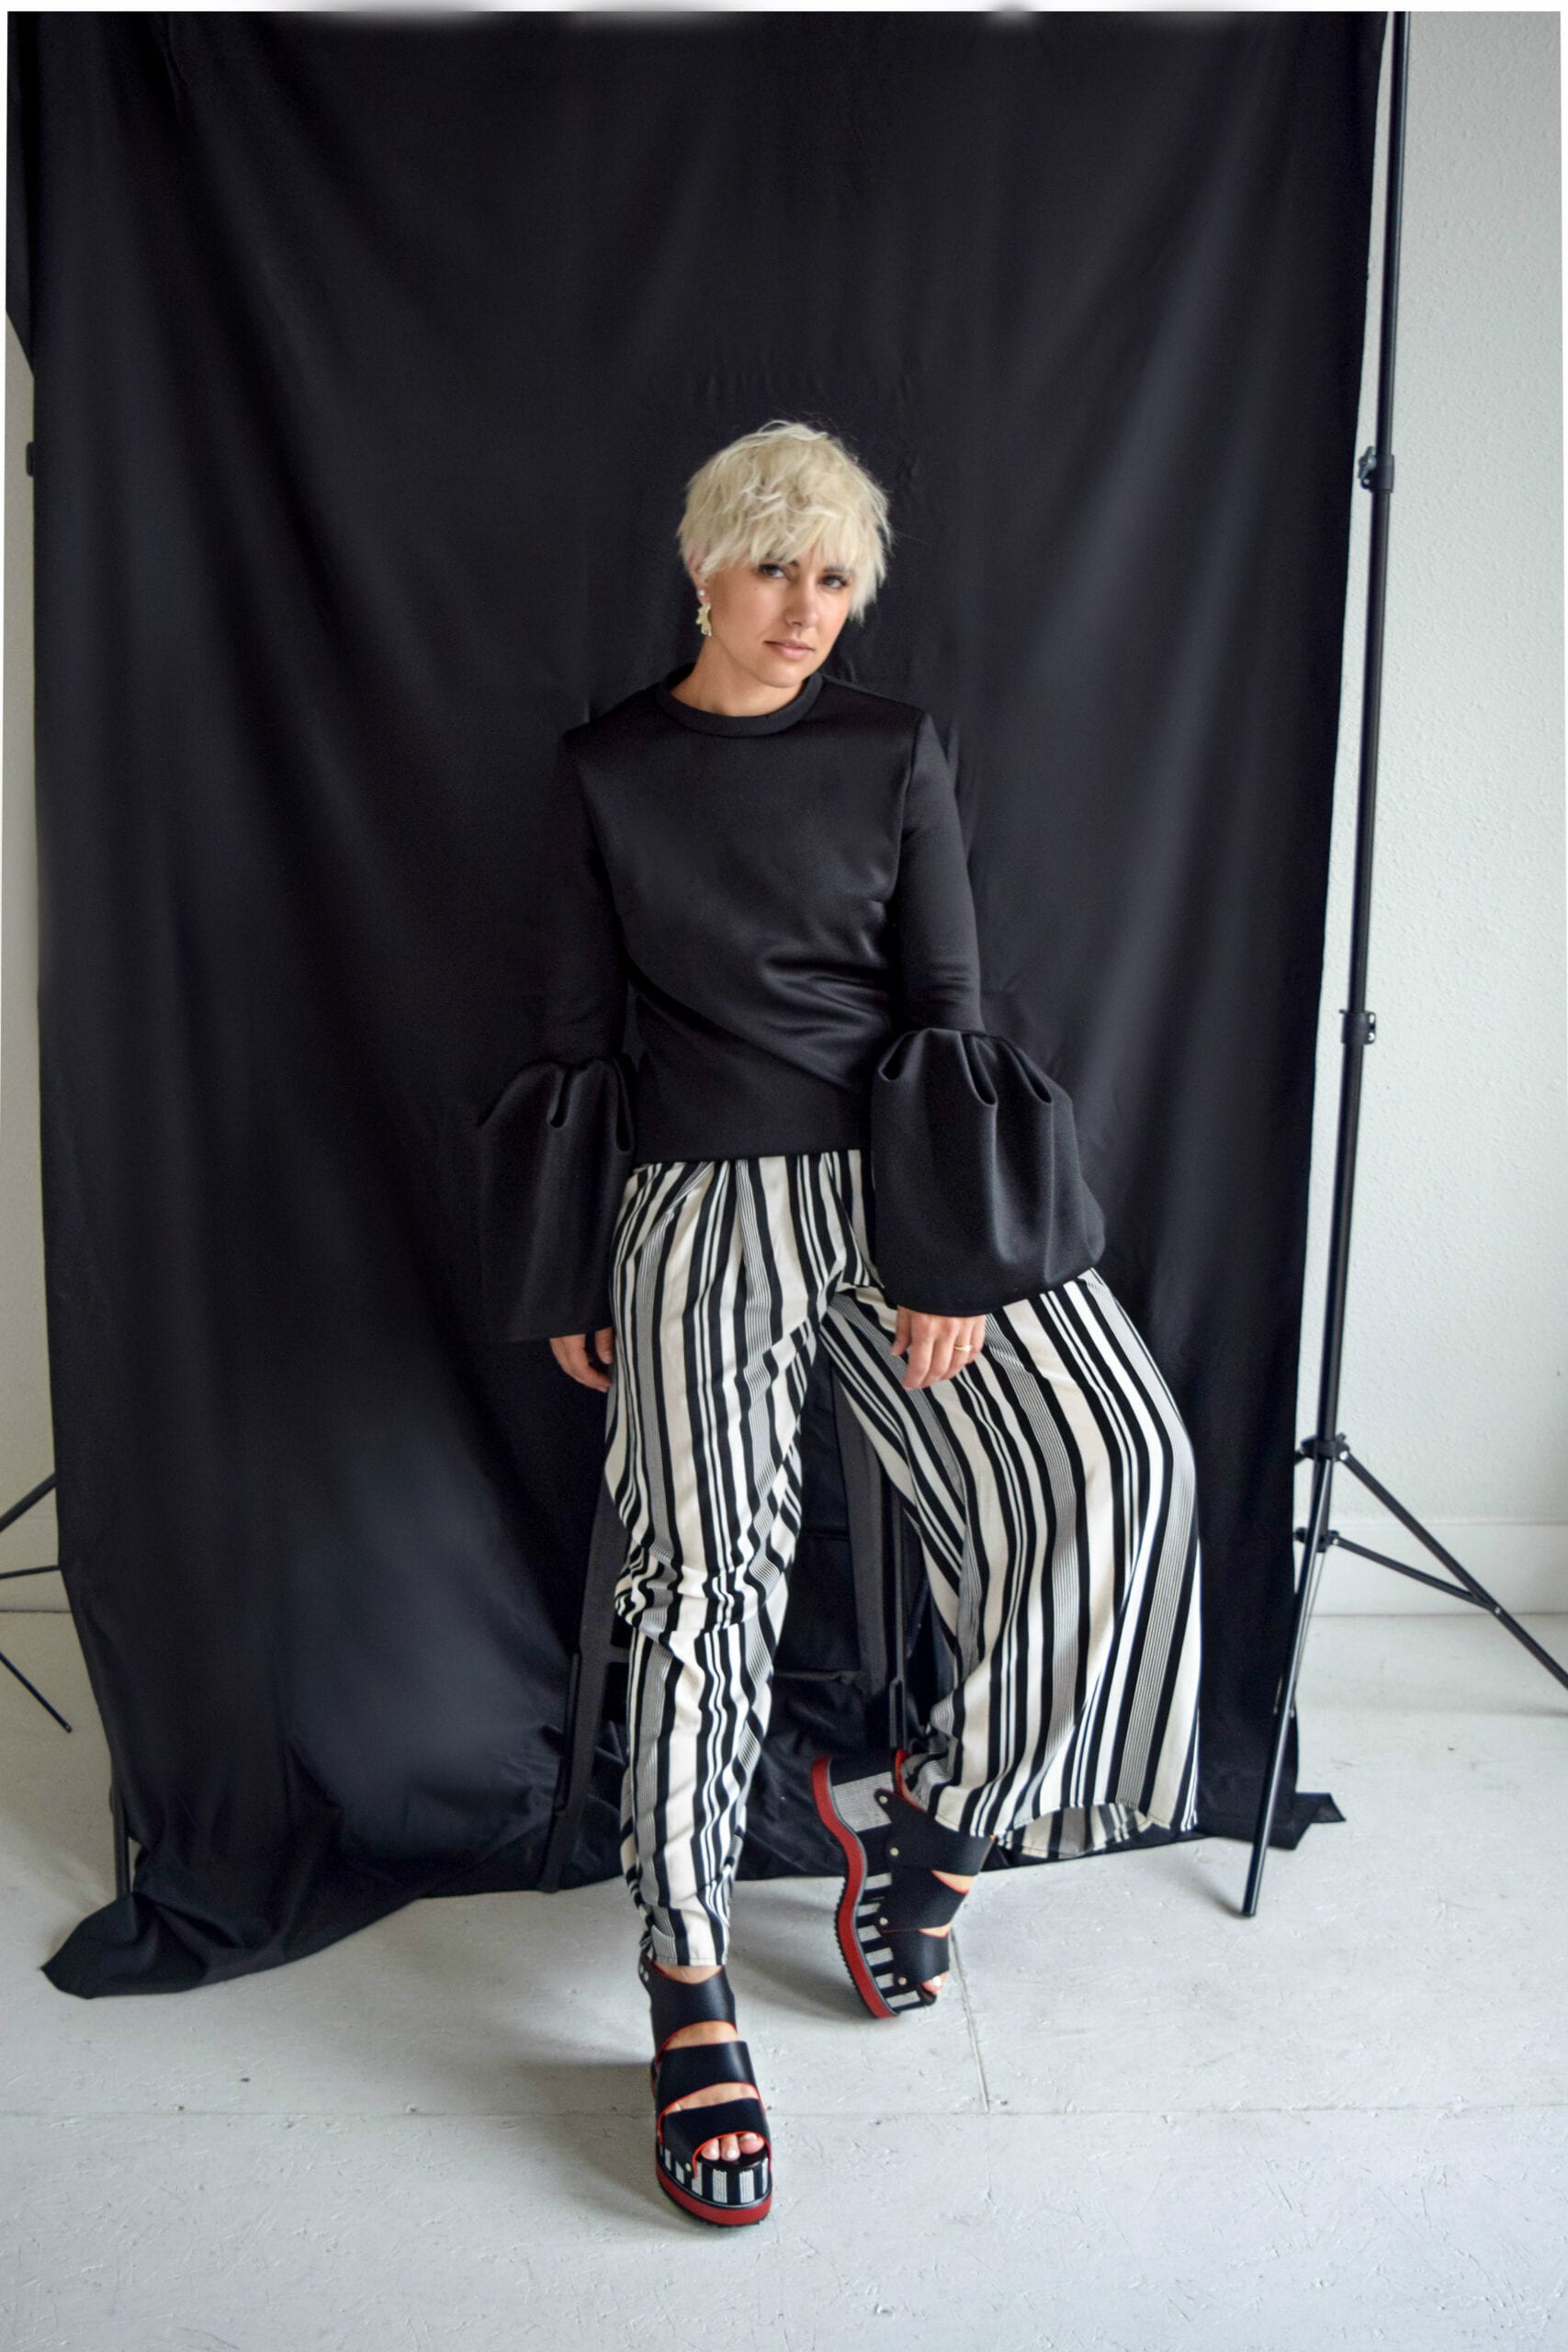 Wide Striped Pants as Worn by Fashion Blogger Rebecca from Blogger Not Billionaire